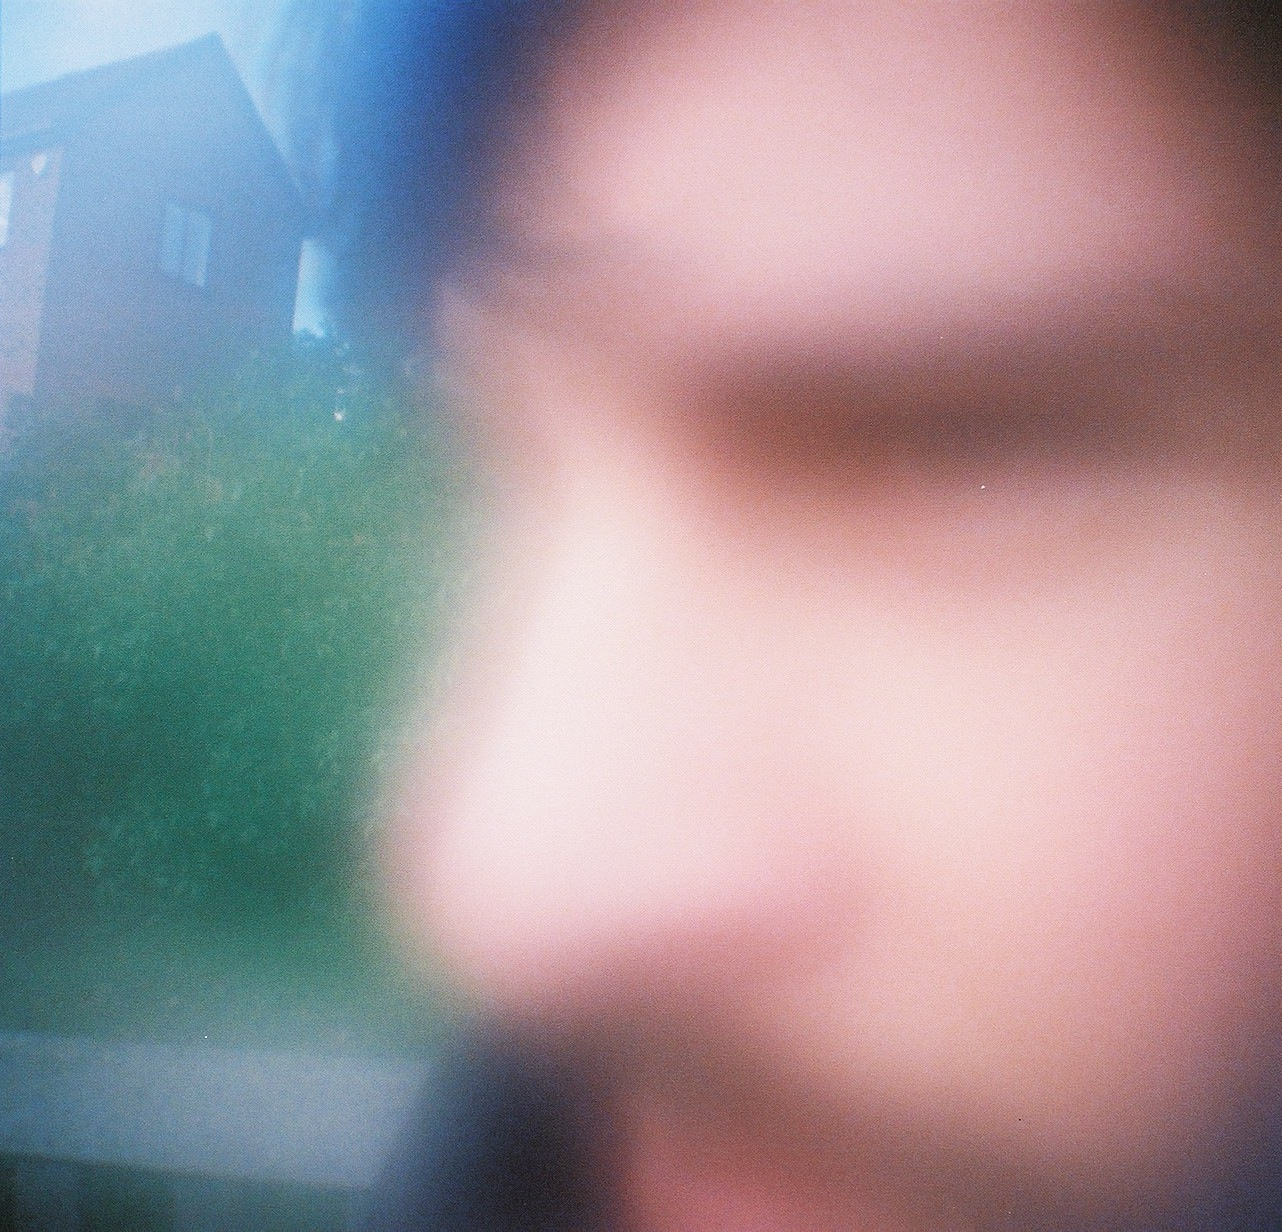 A foggy image of a man's face. Grass can be seen behind him.